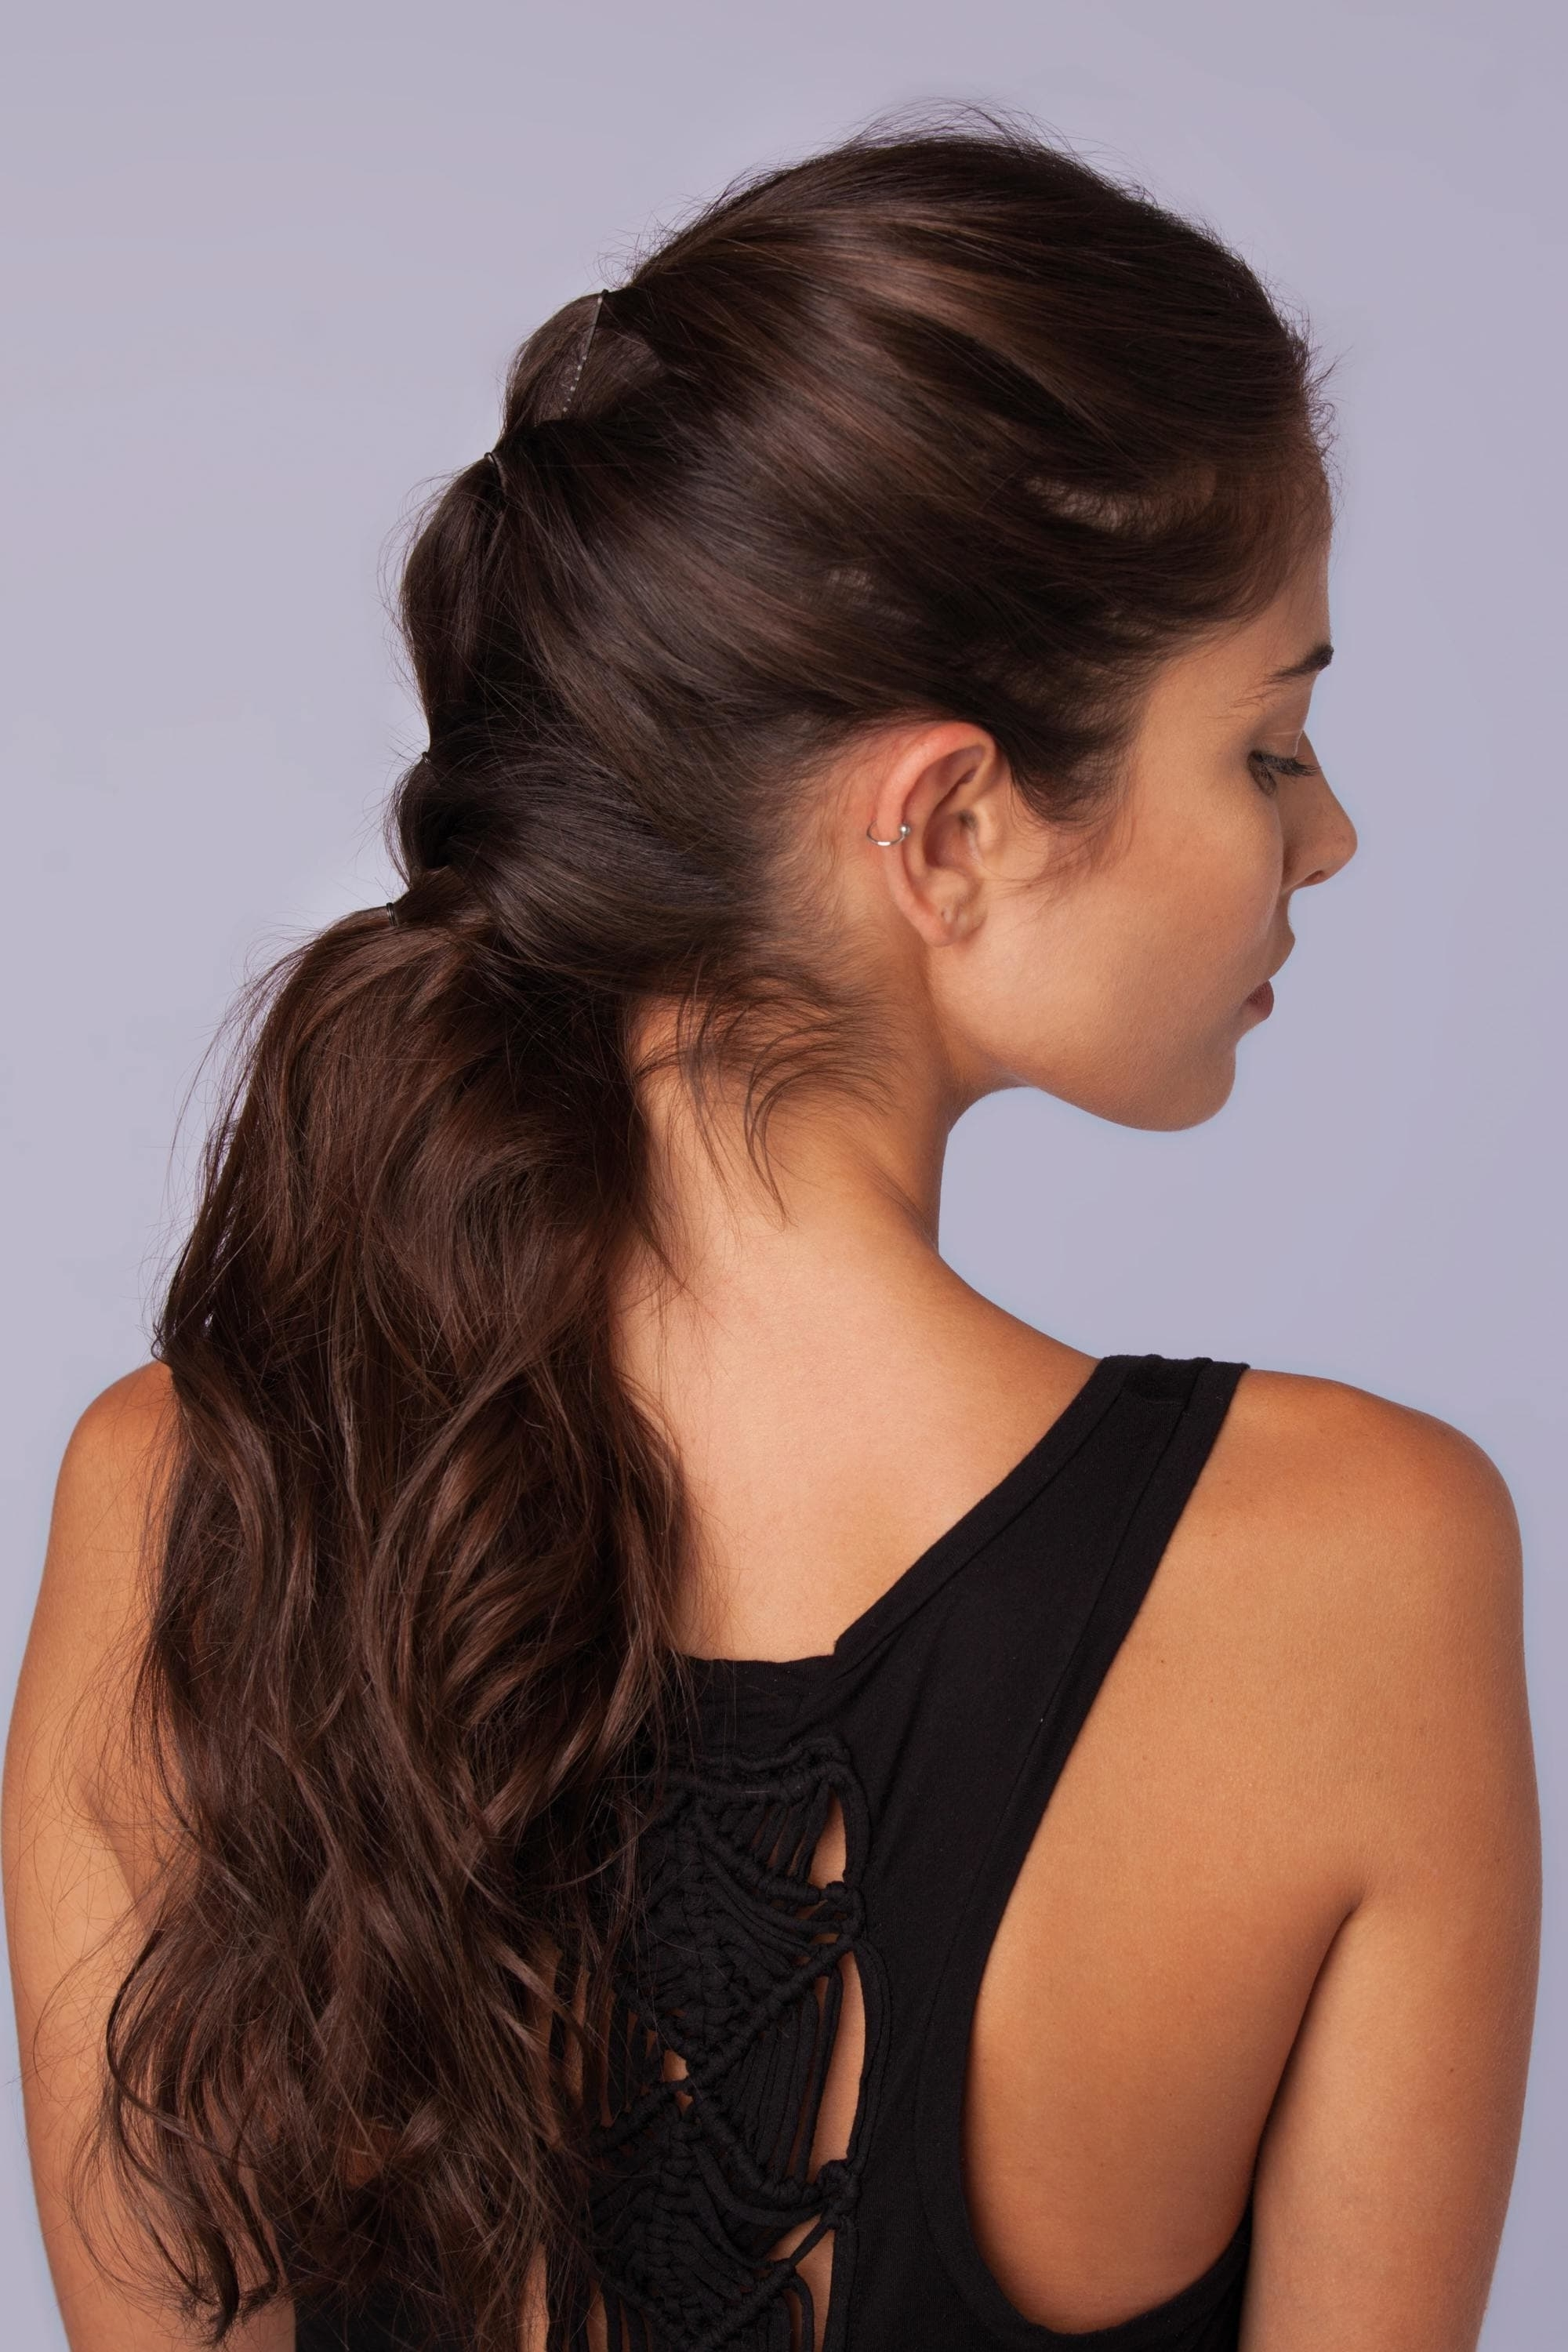 14 Fashionable Vintage Updo Hairstyles For You To Try (2018 Update) Regarding Most Current Punky Ponytail Hairstyles (View 11 of 20)